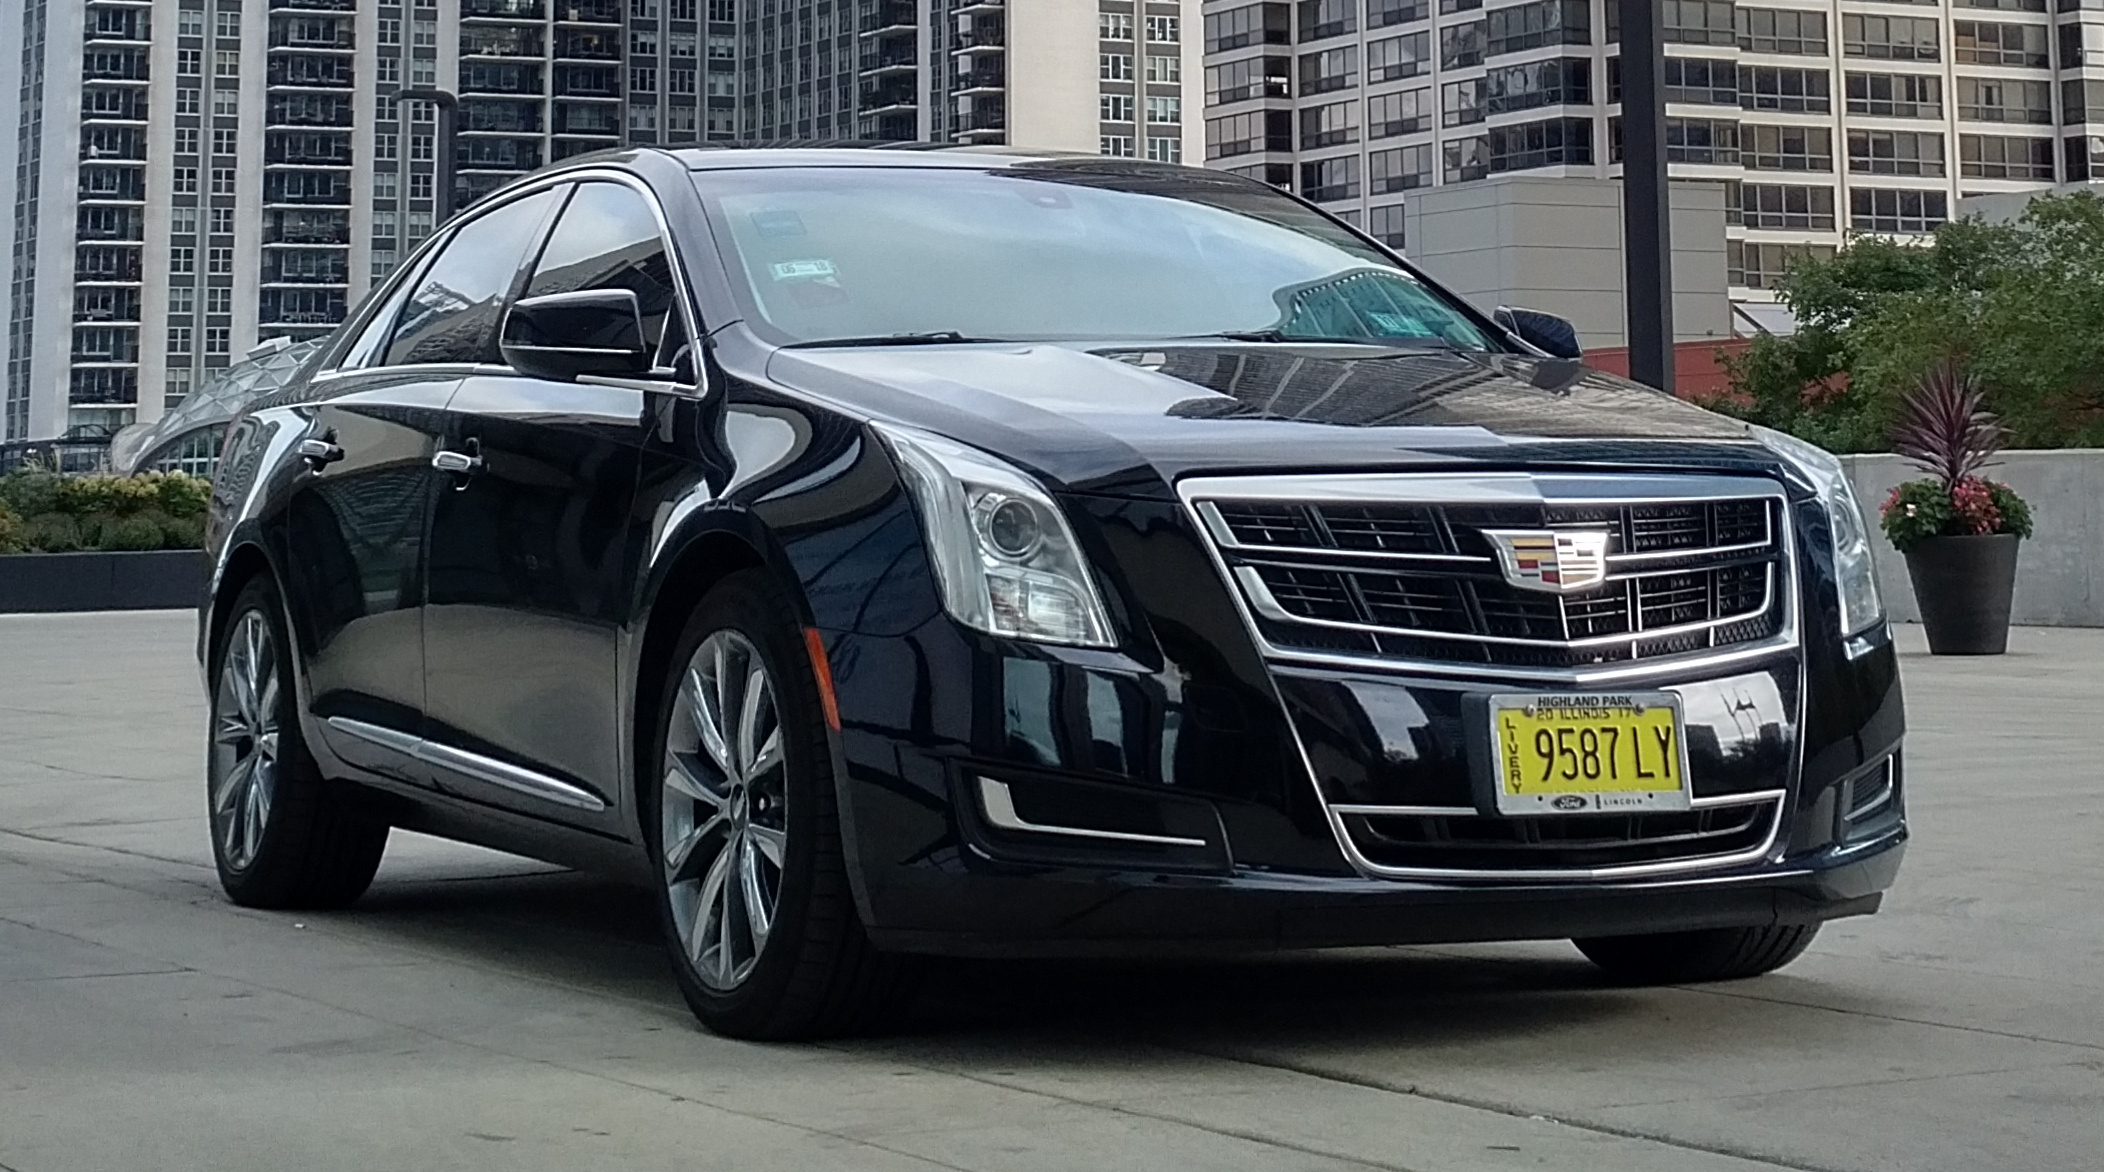 https://upload.wikimedia.org/wikipedia/commons/c/c2/Cadillac_XTS_2017.jpg